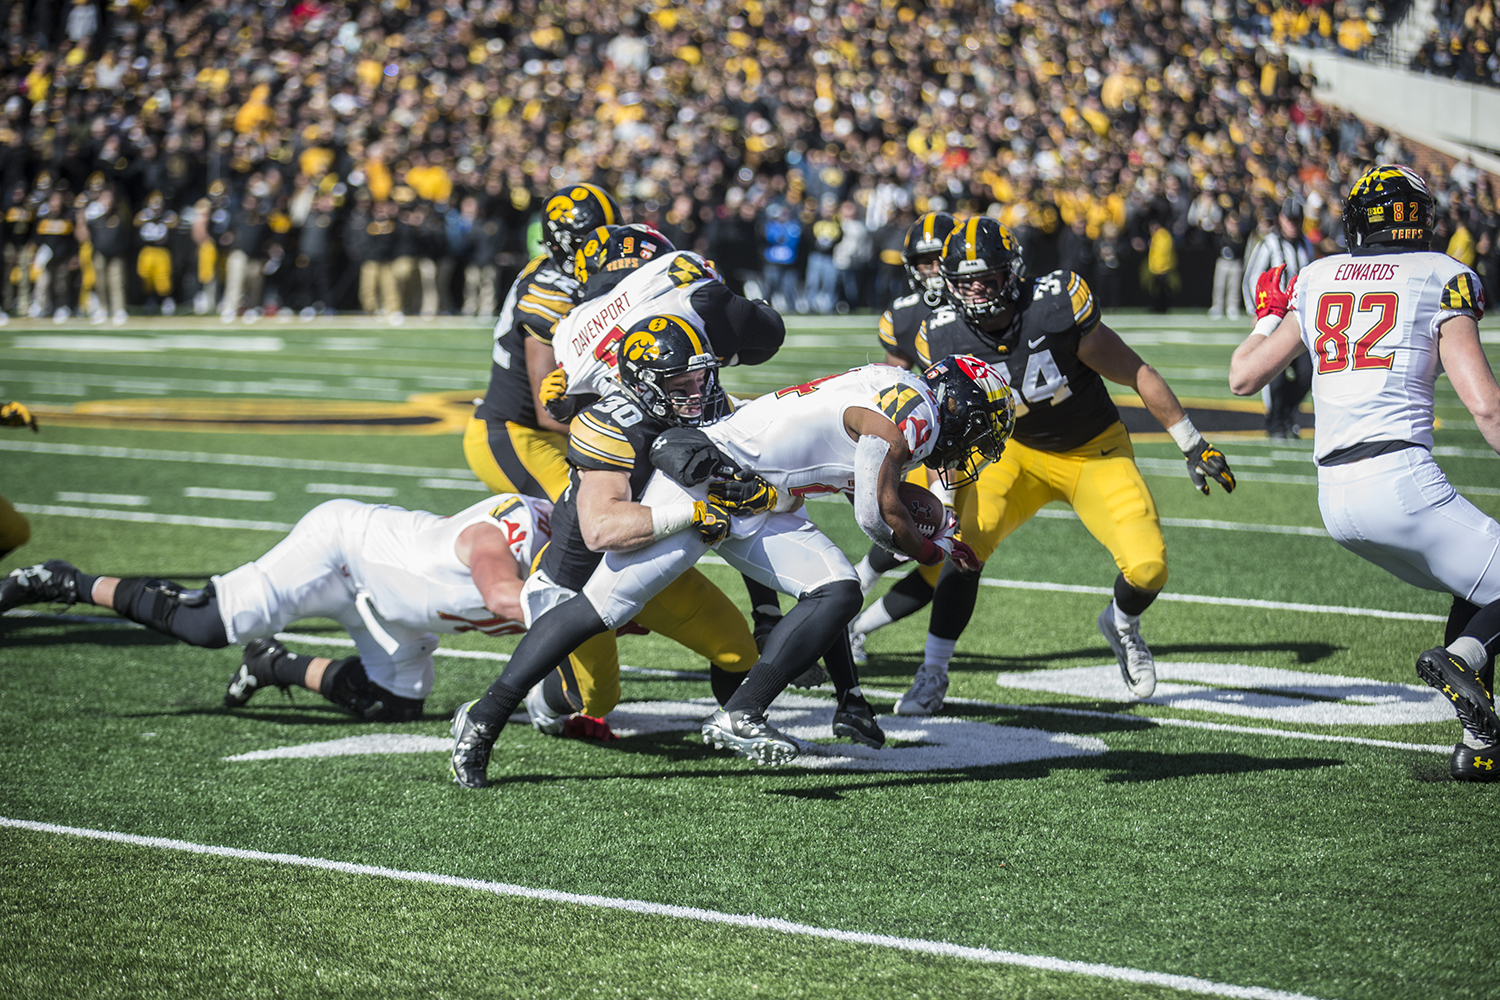 Iowa+defenders%2C+led+by+defensive+back+Jake+Gervase%2C+converge+on+Maryland+running+back+Ty+Johnson+during+a+football+game+between+Iowa+and+Maryland+in+Kinnick+Stadium+on+Saturday%2C+October+20%2C+2018.+The+Hawkeyes+defeated+the+Terrapins%2C+23-0.+